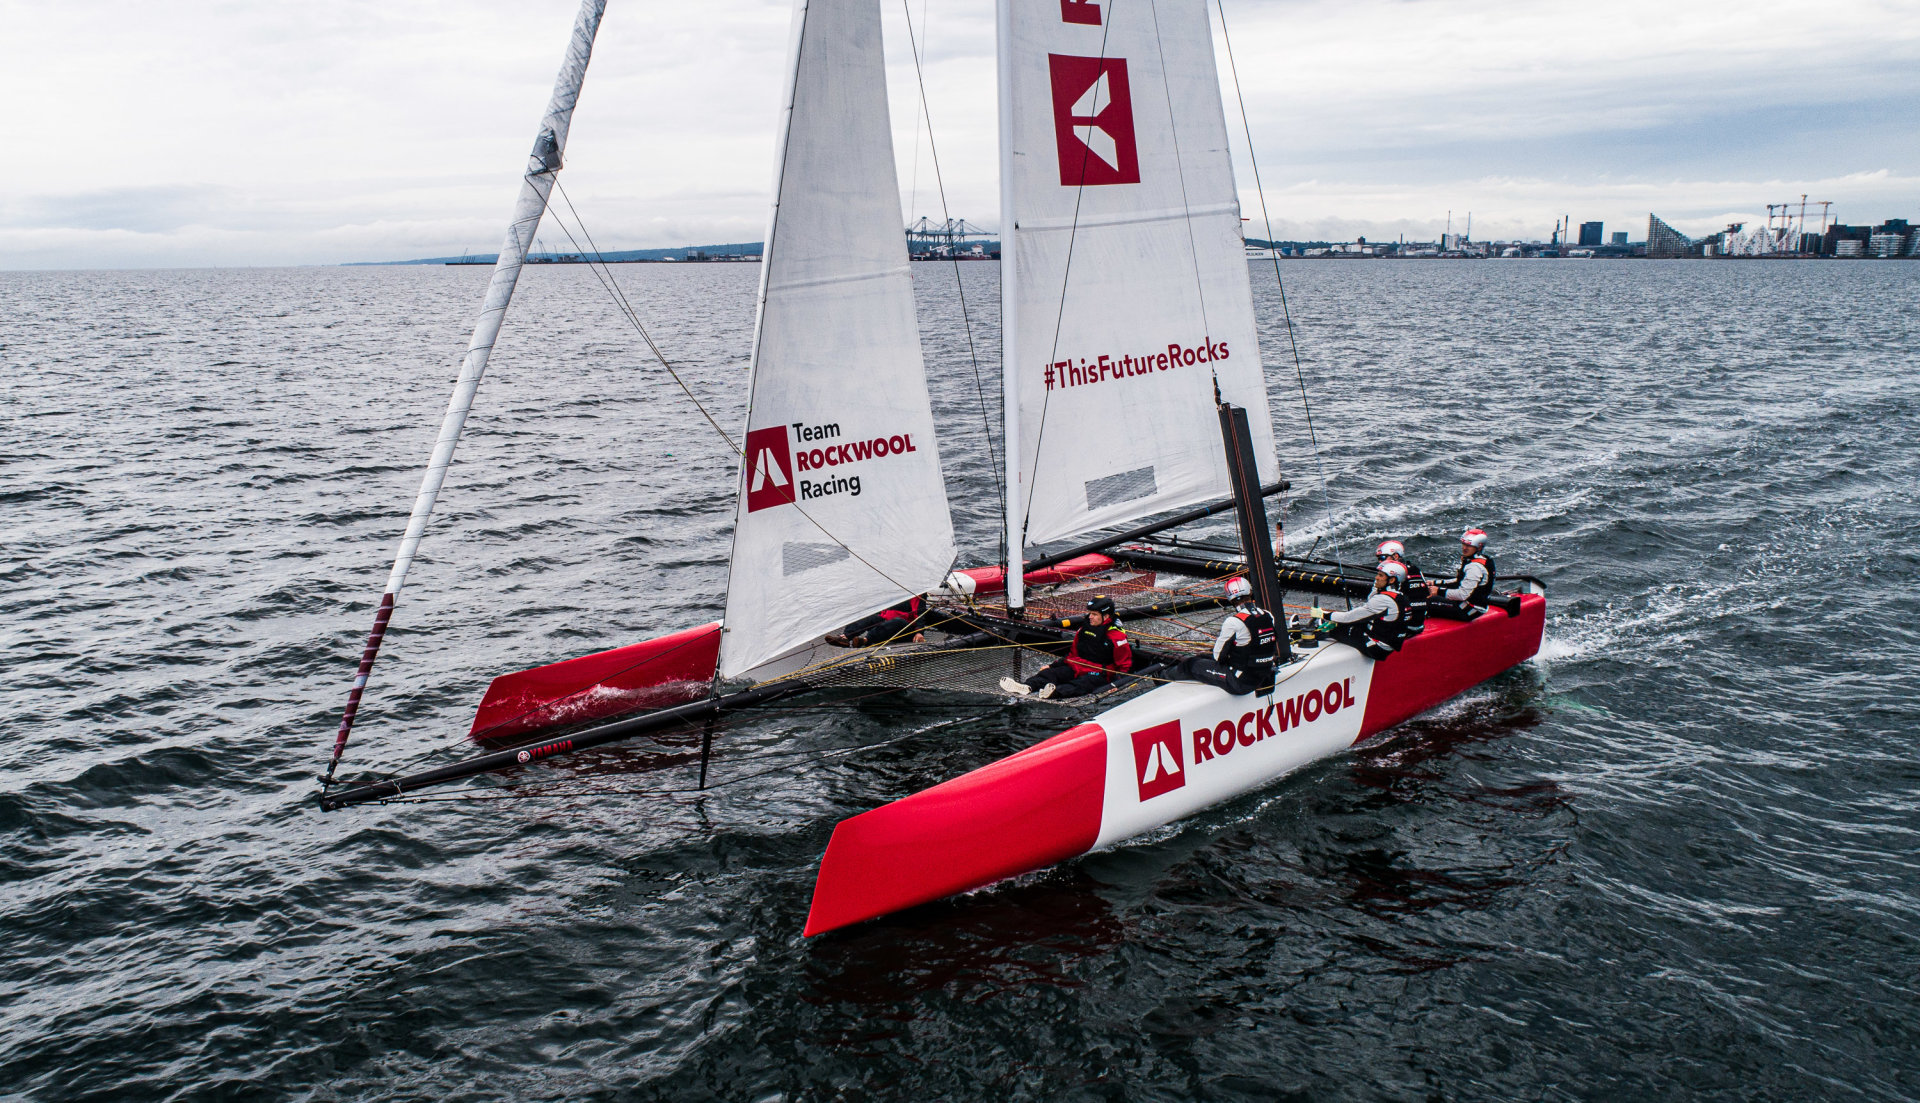 Team ROCKWOOL Racing hits the water; eyes historic record attempts